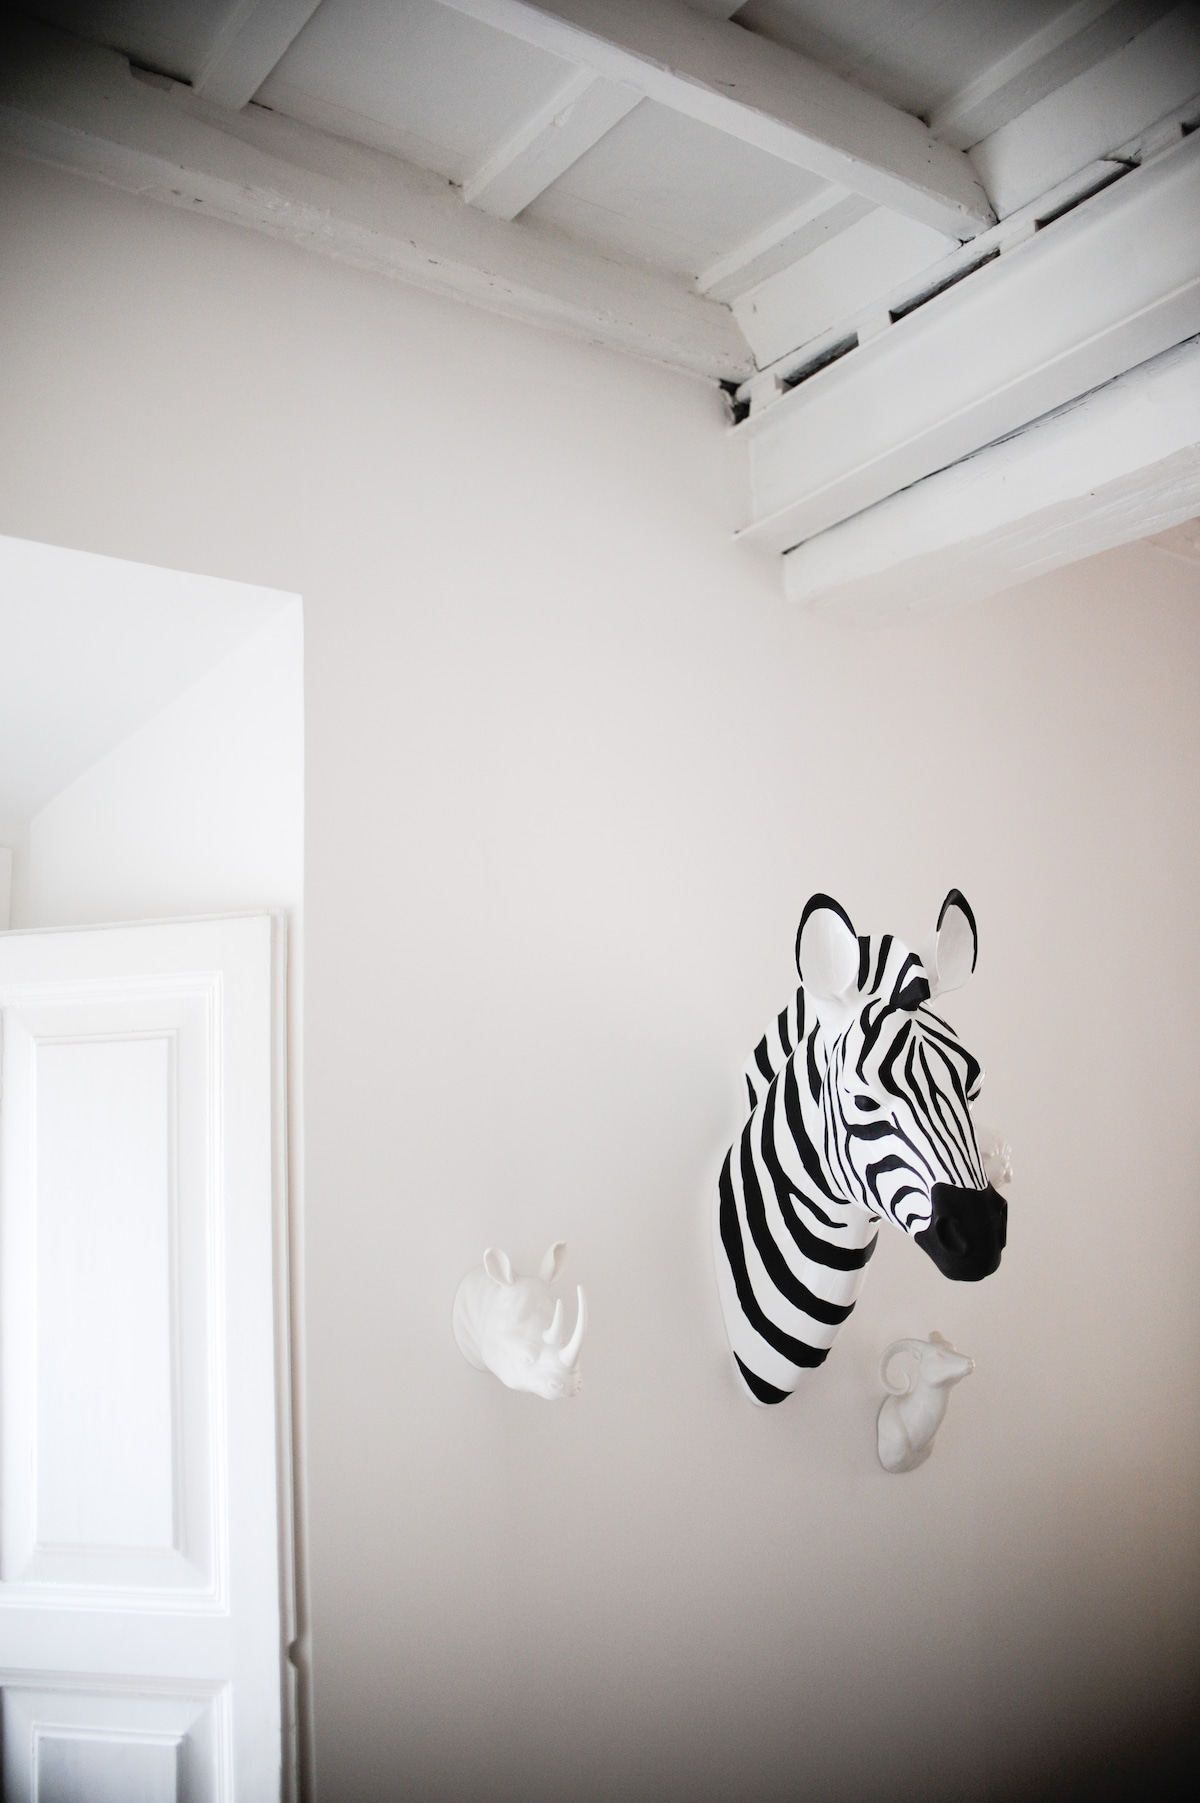 Our prided animal head collection - all ceramic, don't worry!